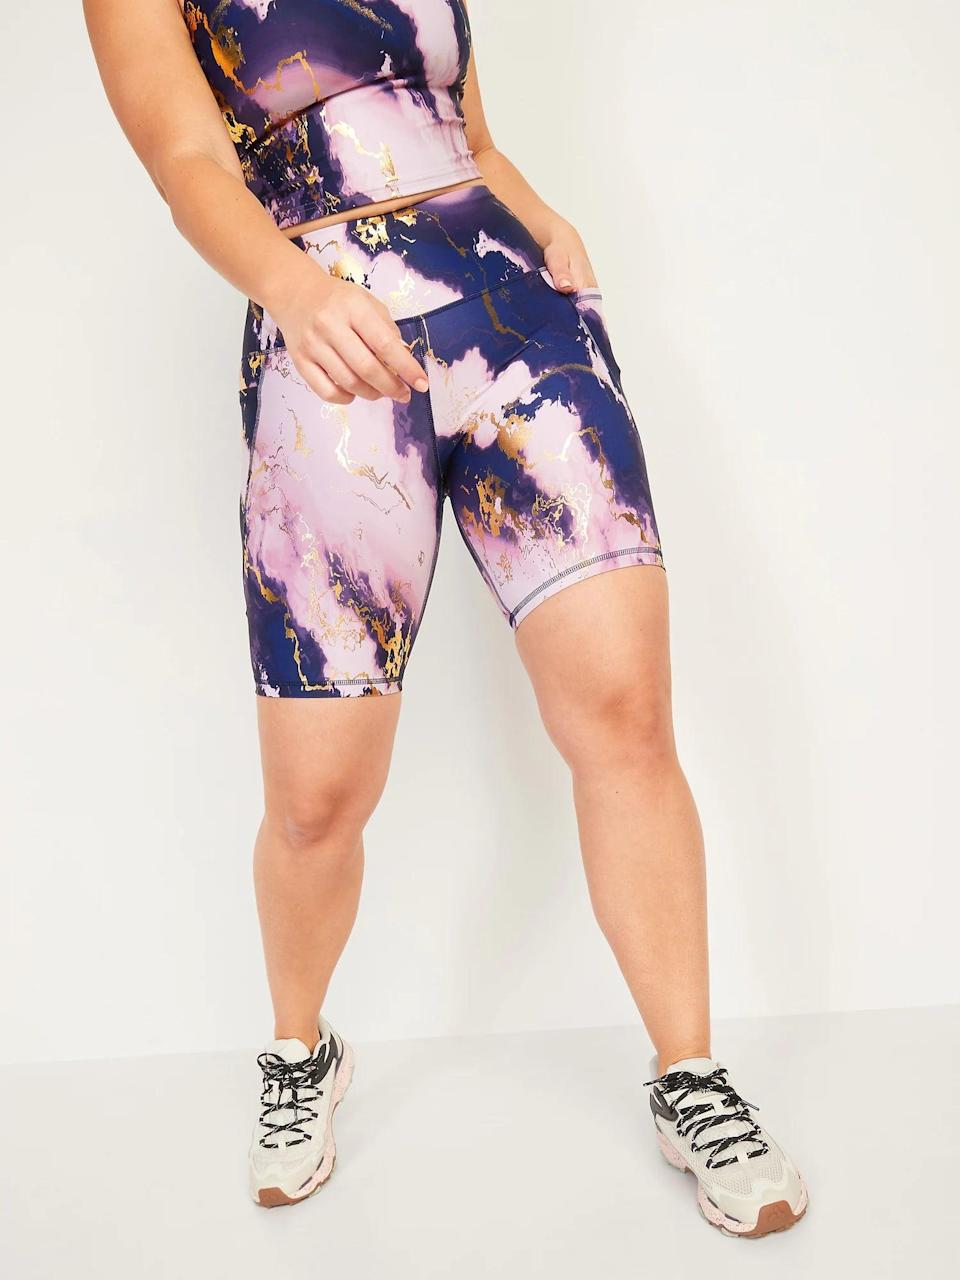 <p>Yep, the <span>Old Navy High-Waisted PowerSoft Side-Pocket Biker Shorts</span> ($27) come in a rich purple color as well! This color is beautiful.</p>